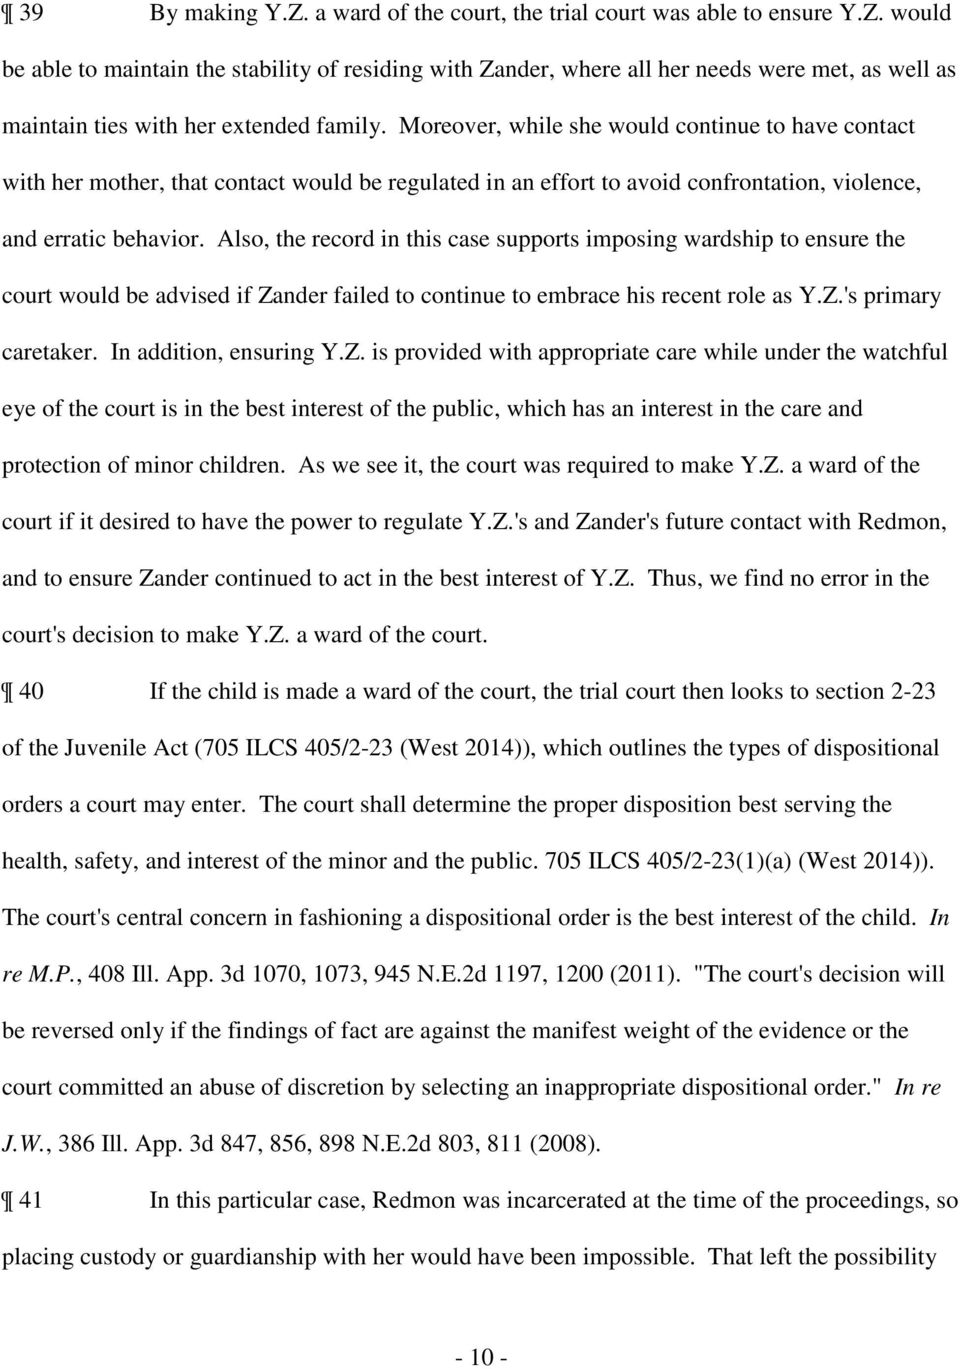 Also, the record in this case supports imposing wardship to ensure the court would be advised if Zander failed to continue to embrace his recent role as Y.Z.'s primary caretaker.